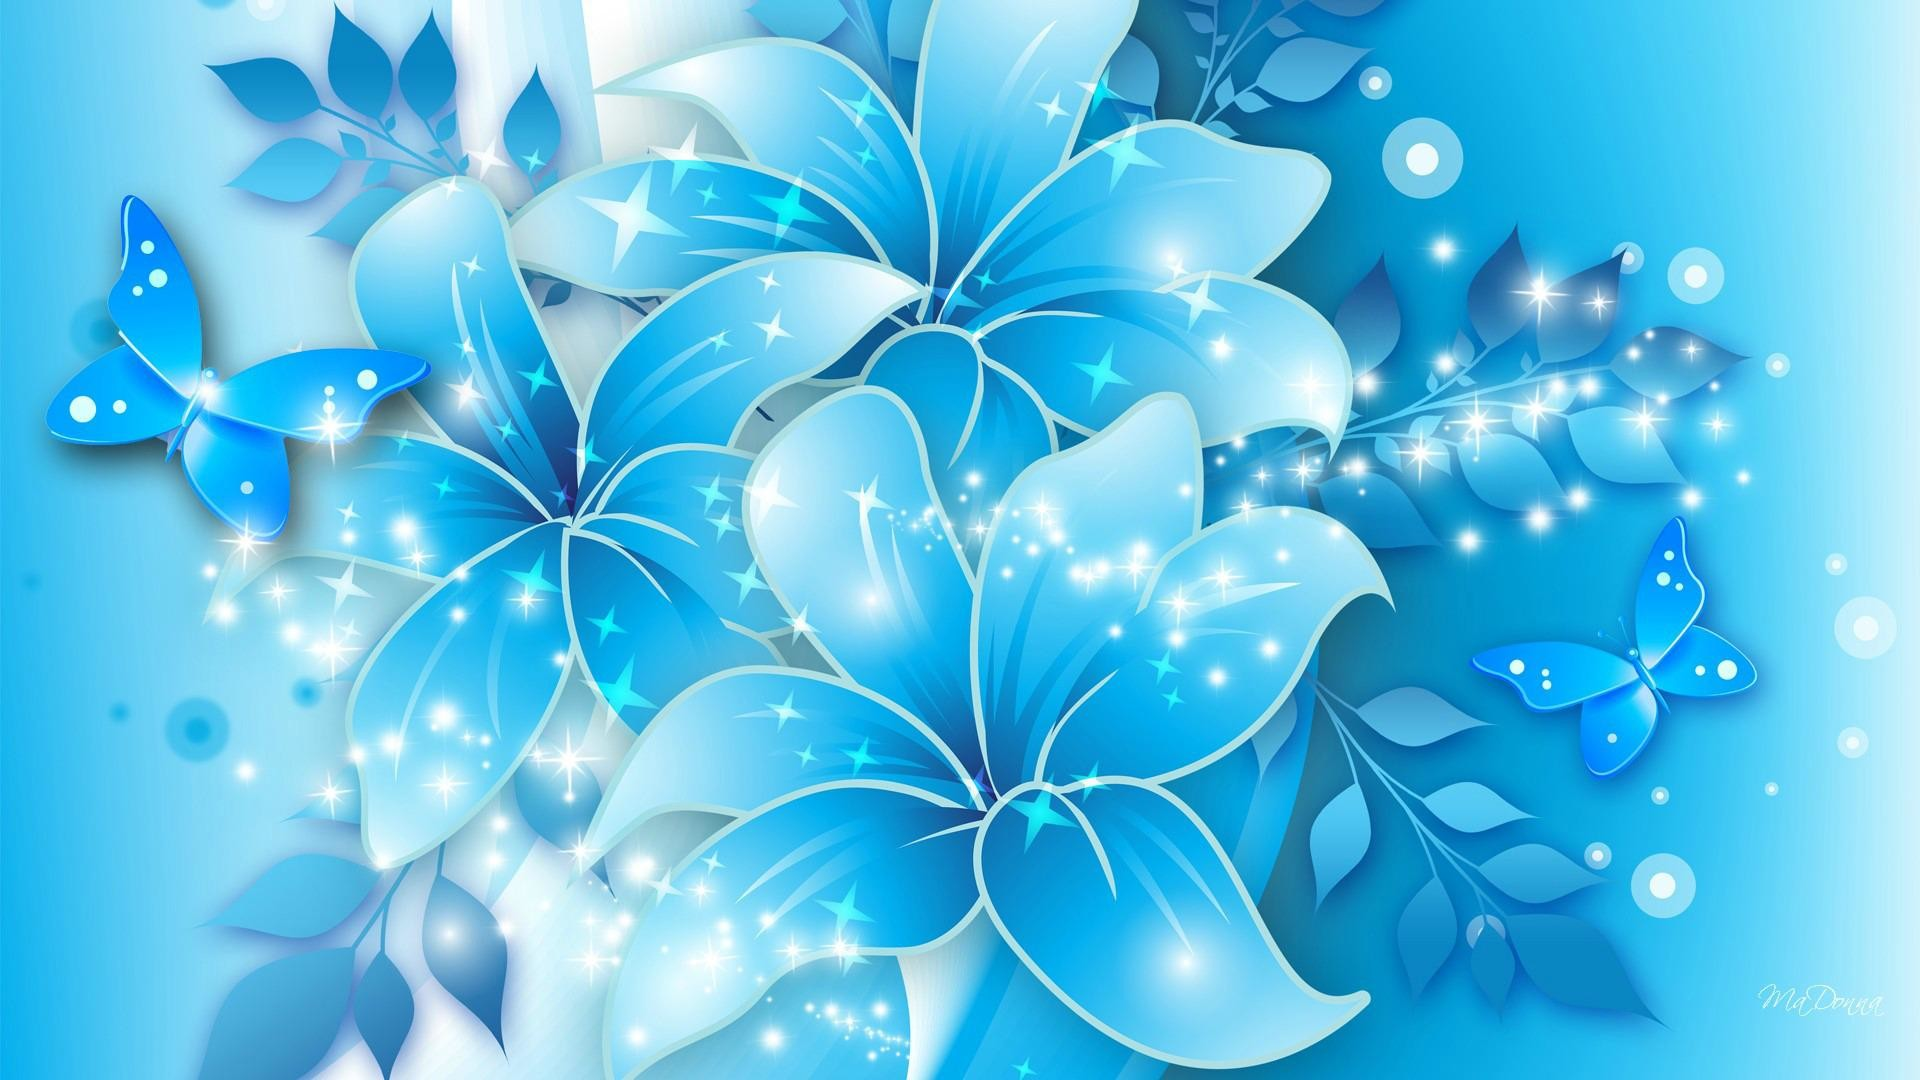 download this wallpaper Flower Vector Designs image High Quality HD